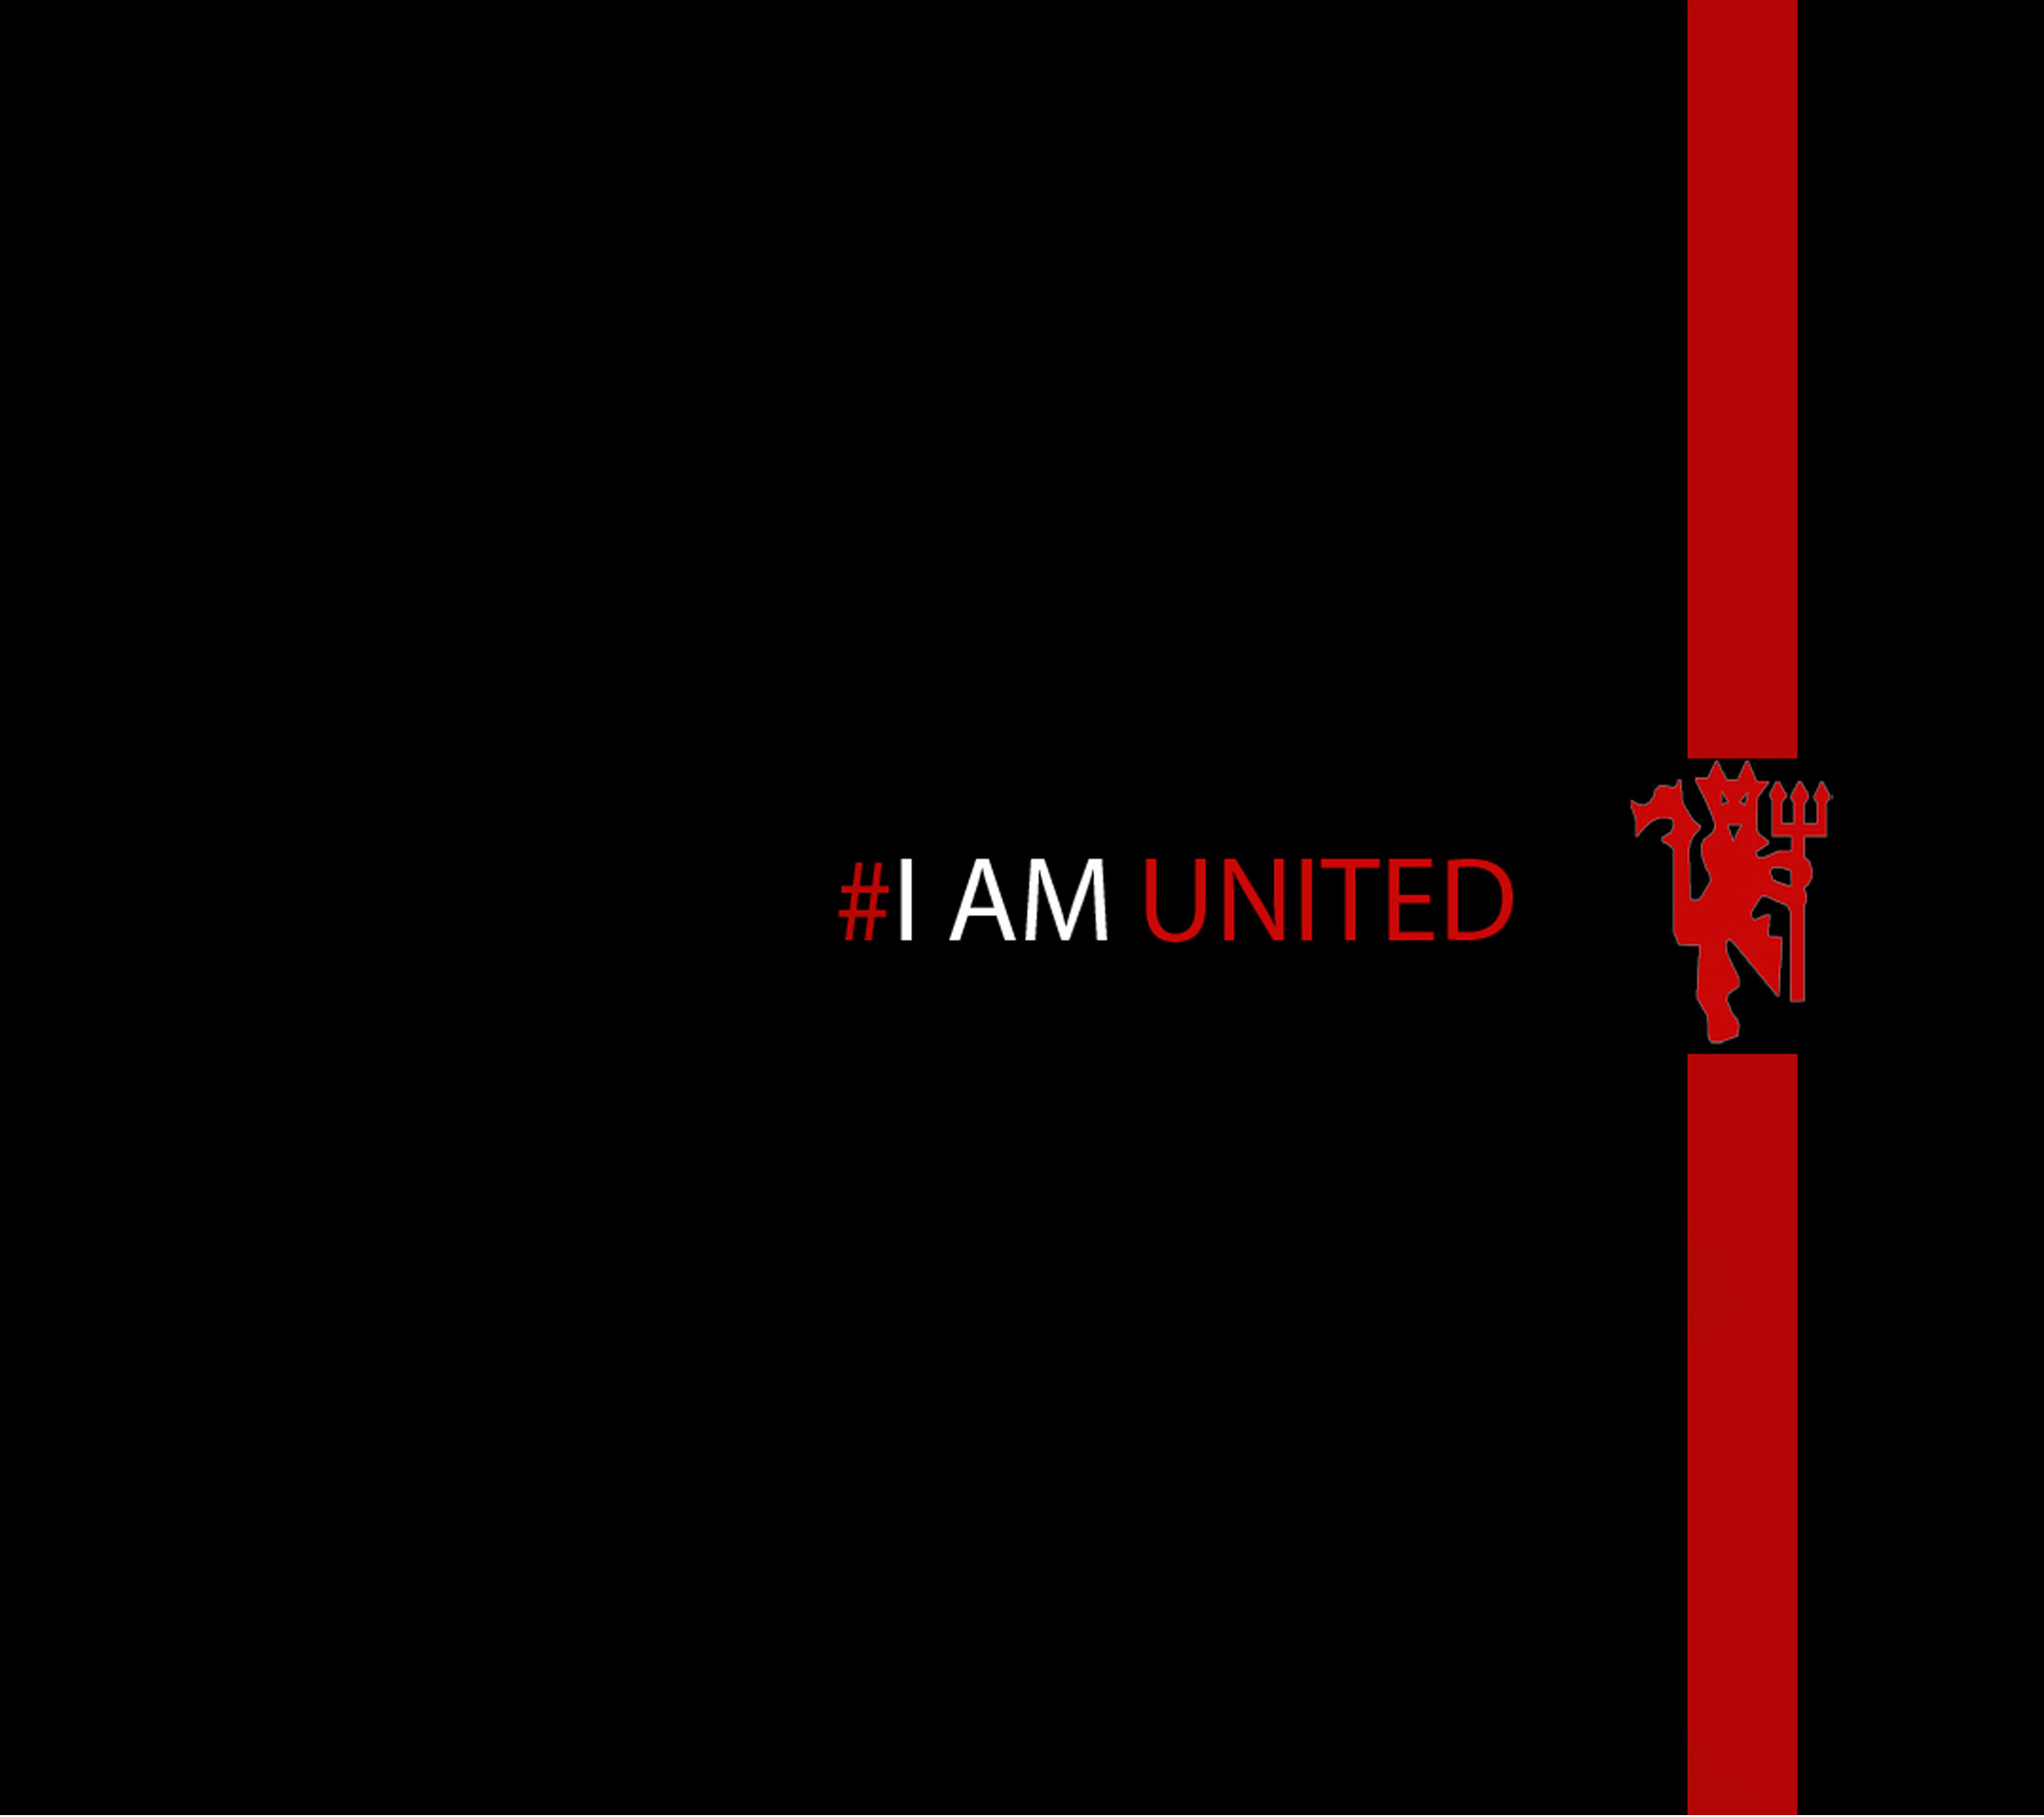 2160x1920 Tattoo Man, Man United, Manchester United, Iphone Wallpapers, Tatoos,  Football